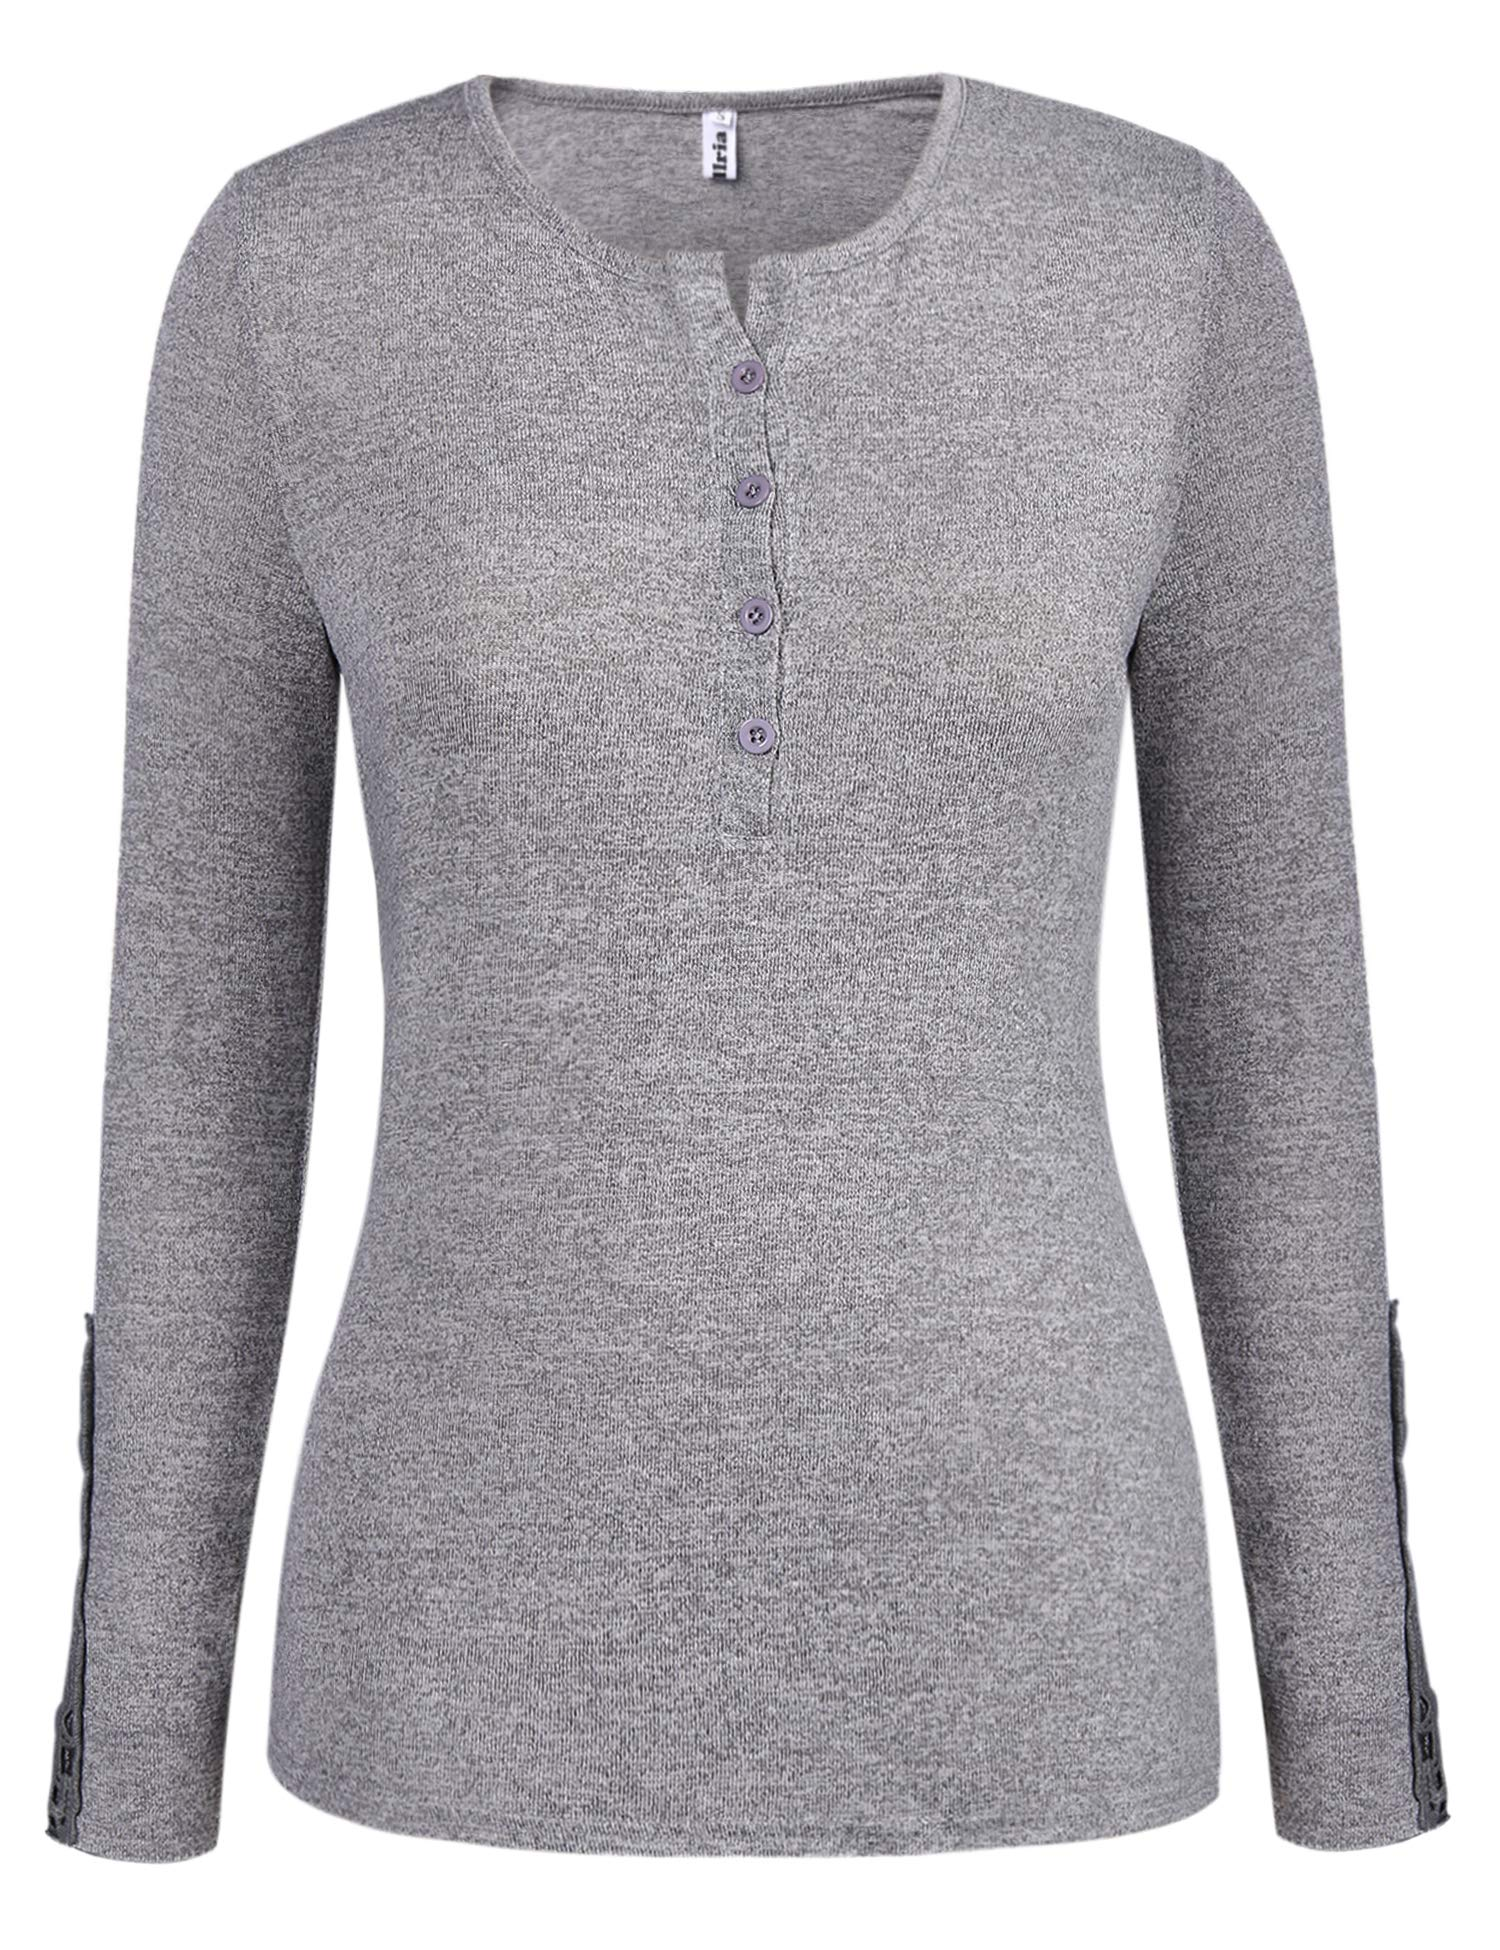 Abollria Women s Long Sleeve Soft Round Neck Slim Fit Knit Sweater Pullover  Top 91ed40482